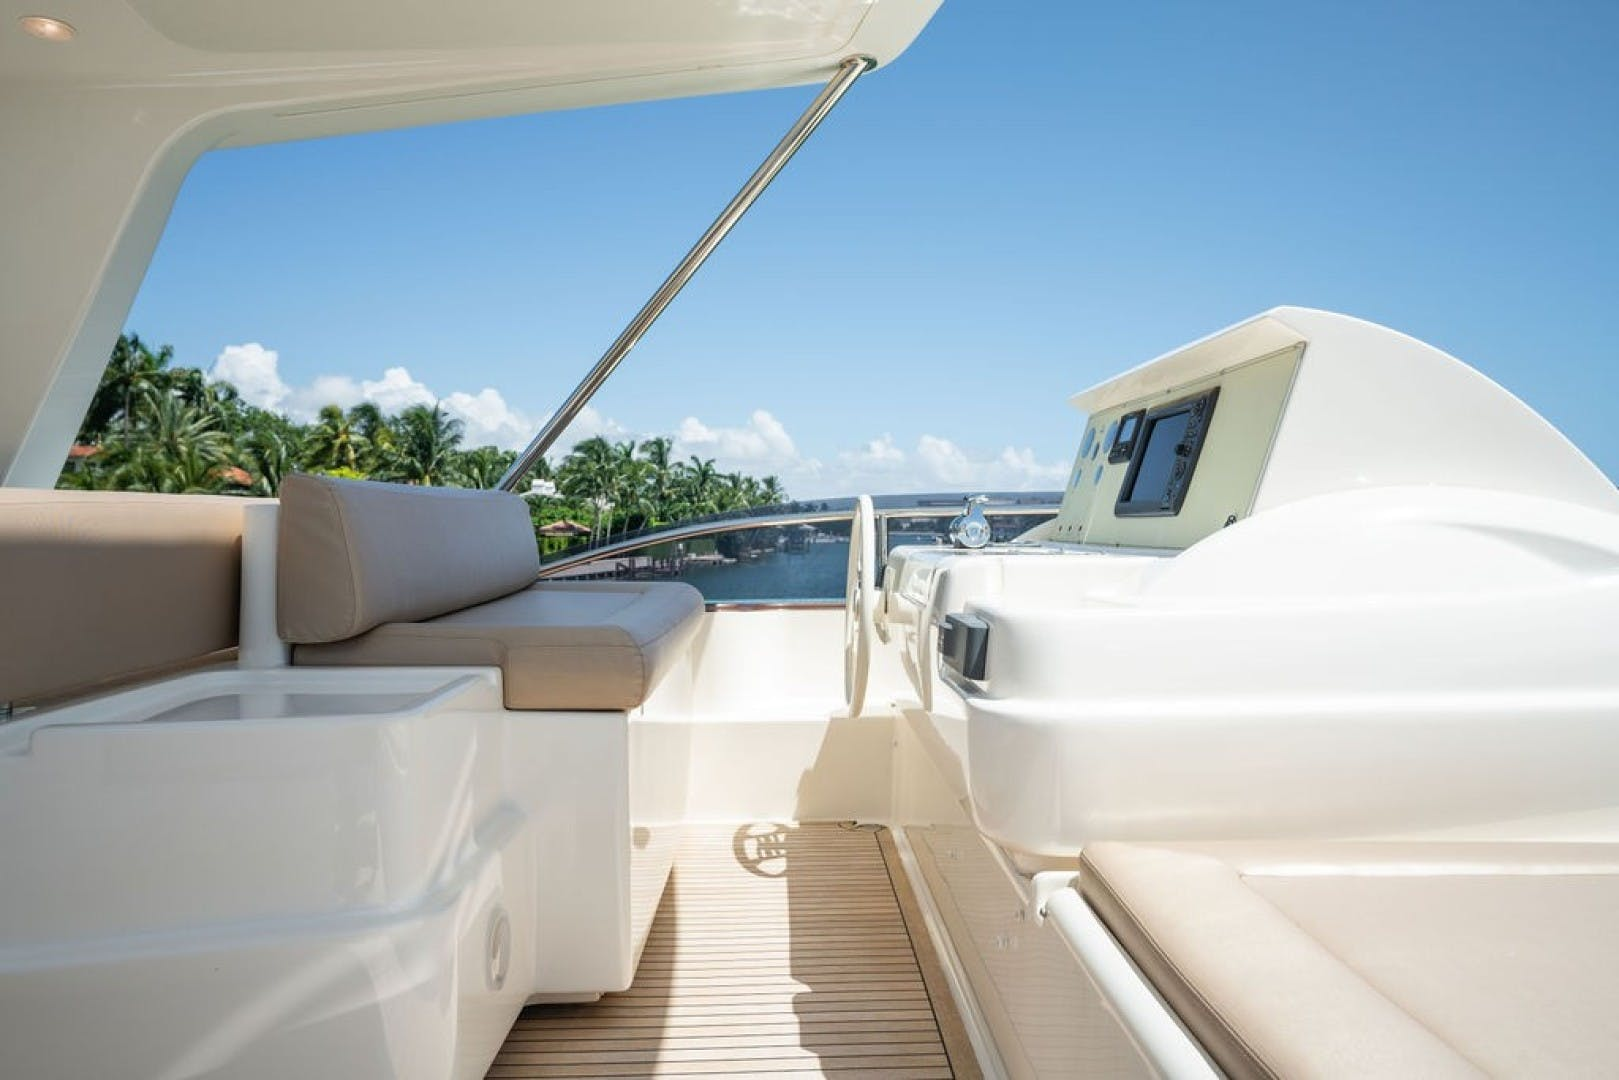 2014 Ferretti Yachts 80' F800 Living Life 3   Picture 7 of 82